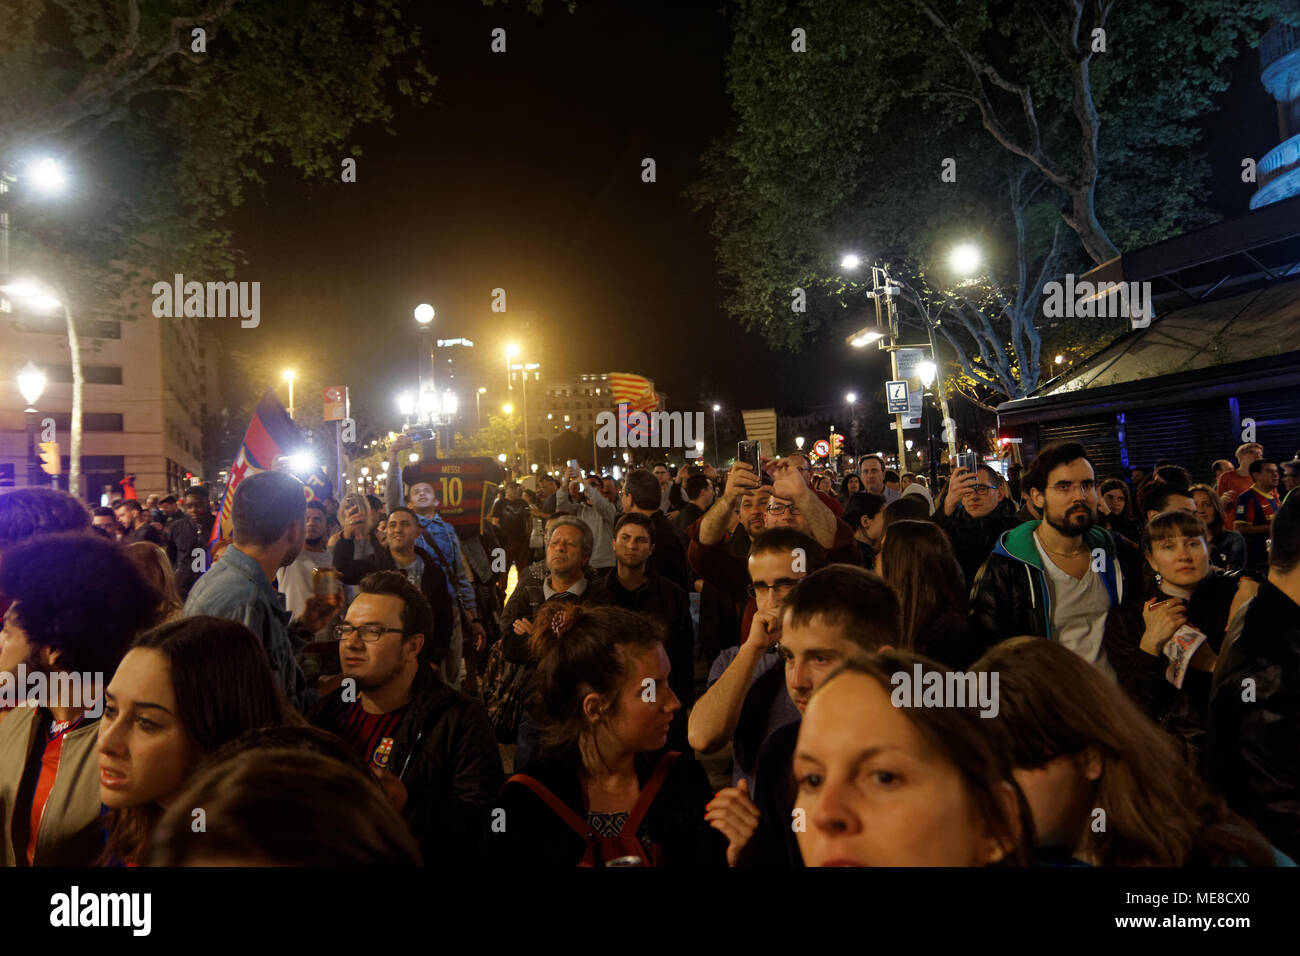 Barcelona, Spain, 21st April 2018. Supporters of  FC Barcelona, Futbol Ckub Barcelona celebrating the win of the Copa del Rey, at the Canaletas, a fountain at the Ramblas of Barcelona the 21st of April 2018 Credit: Karl Burkhof/Alamy Live News - Stock Image